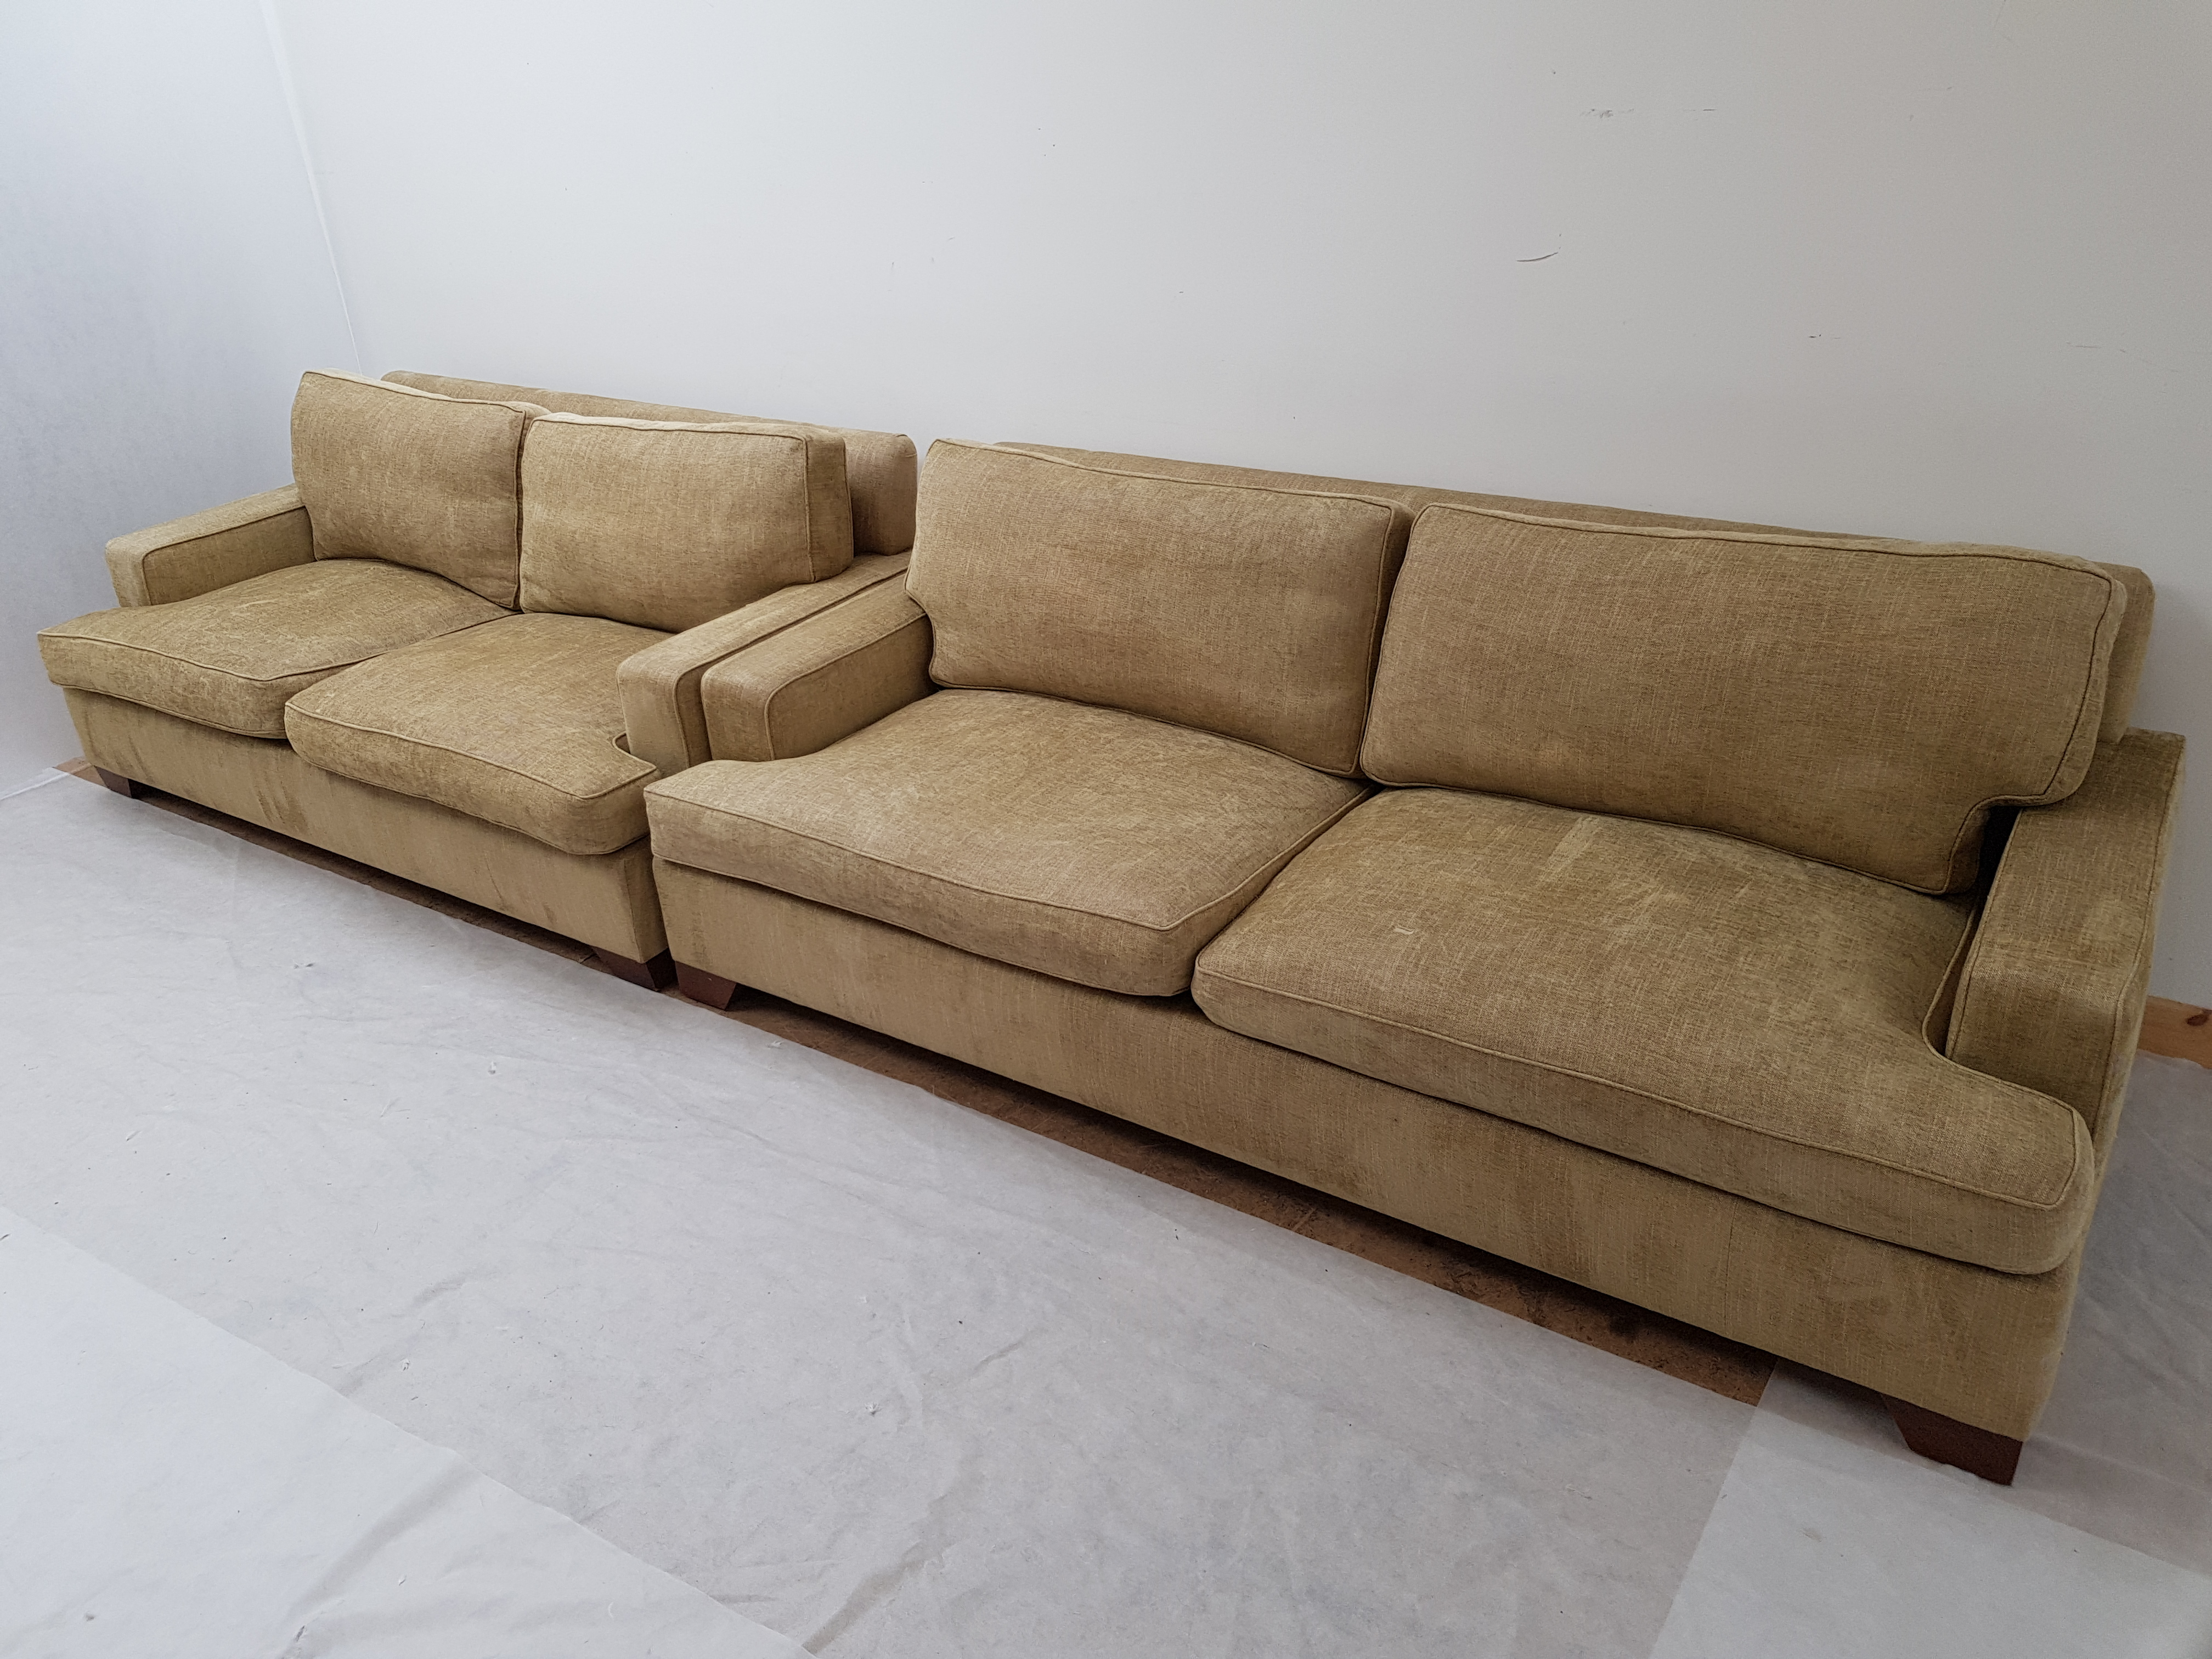 kingcome sofa sale without back name 2 and 3 seater sofas krs upholstery